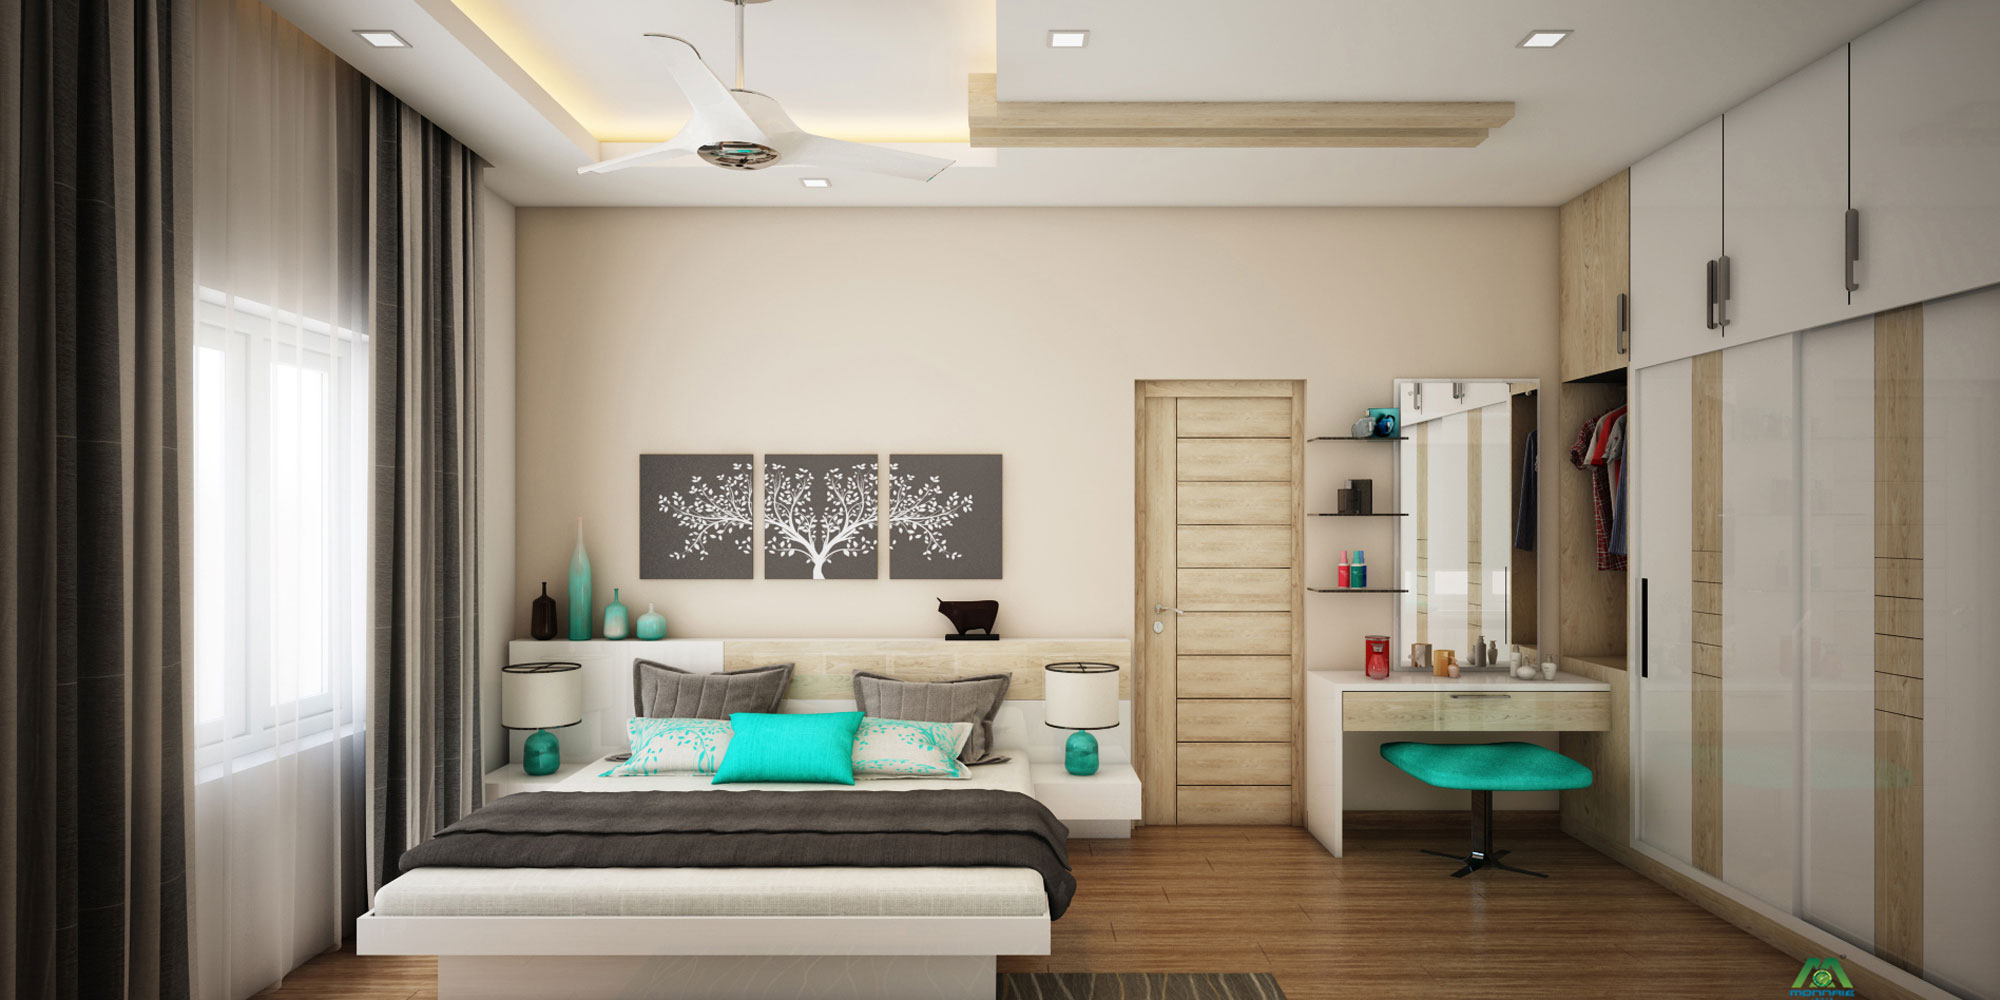 Home interior designers in Kerala - Monnaie Architects & Interiors